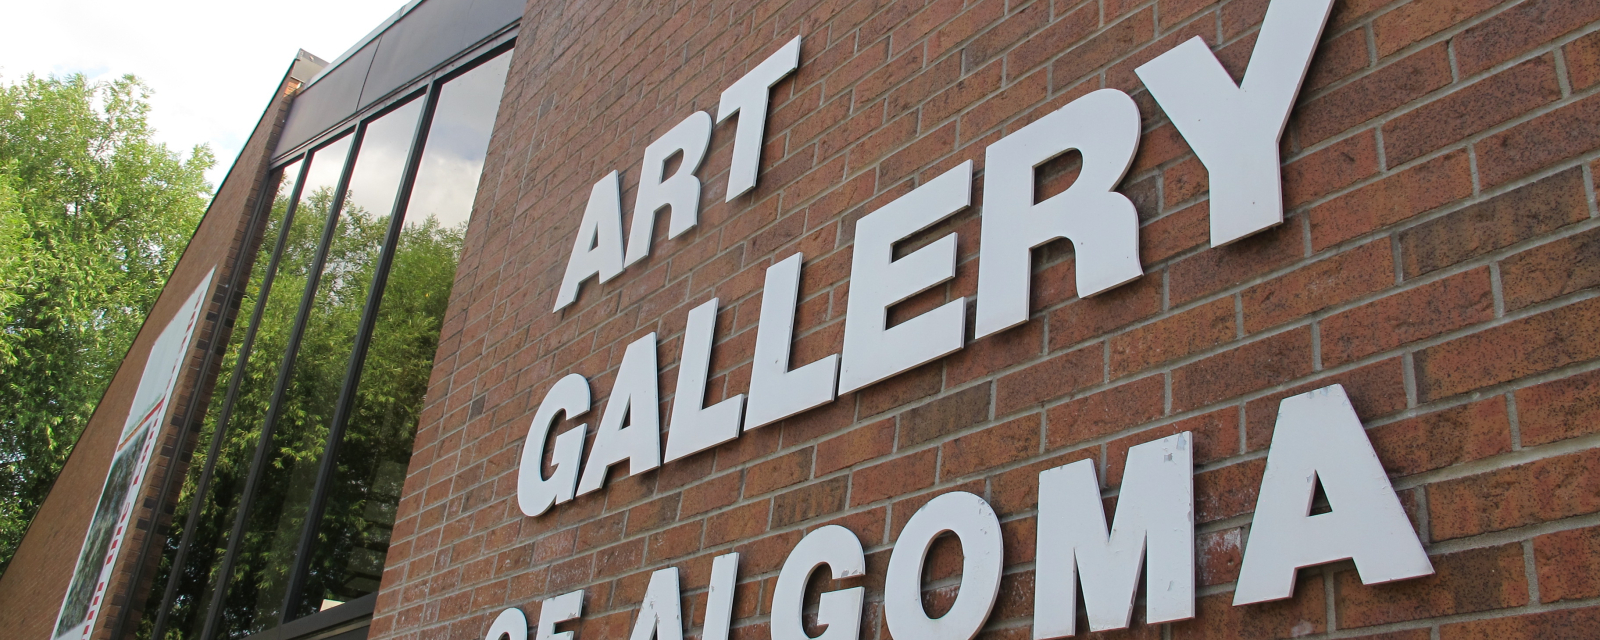 Art Gallery of Algoma